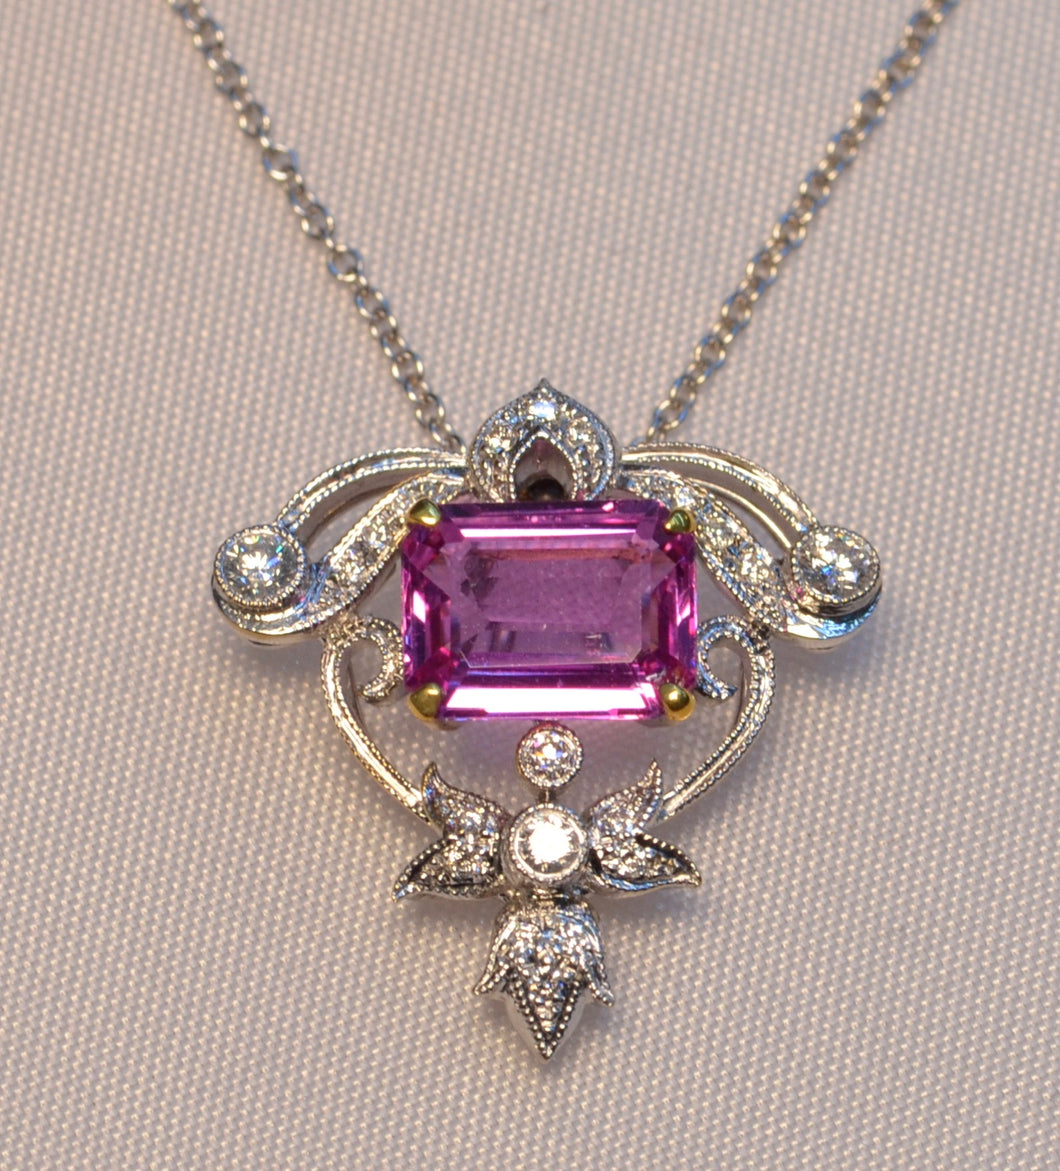 18K white gold pendant with center emerald-cut pink Sapphire and 20 side diamonds